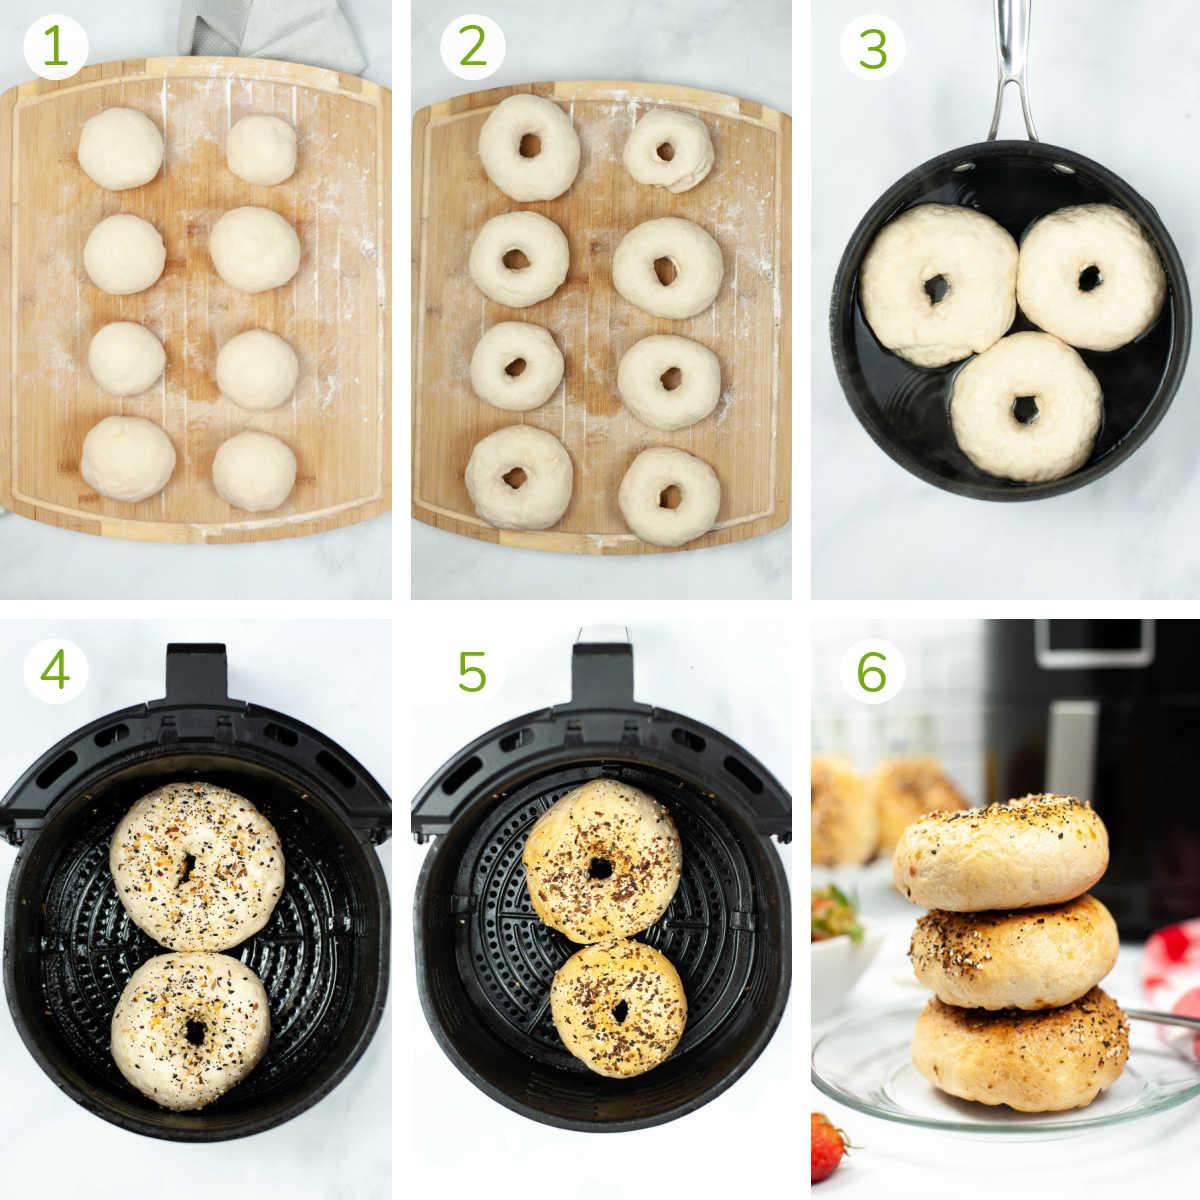 instruction photos showing how to separate the dough, shape and boil them and then season in the air fryer.